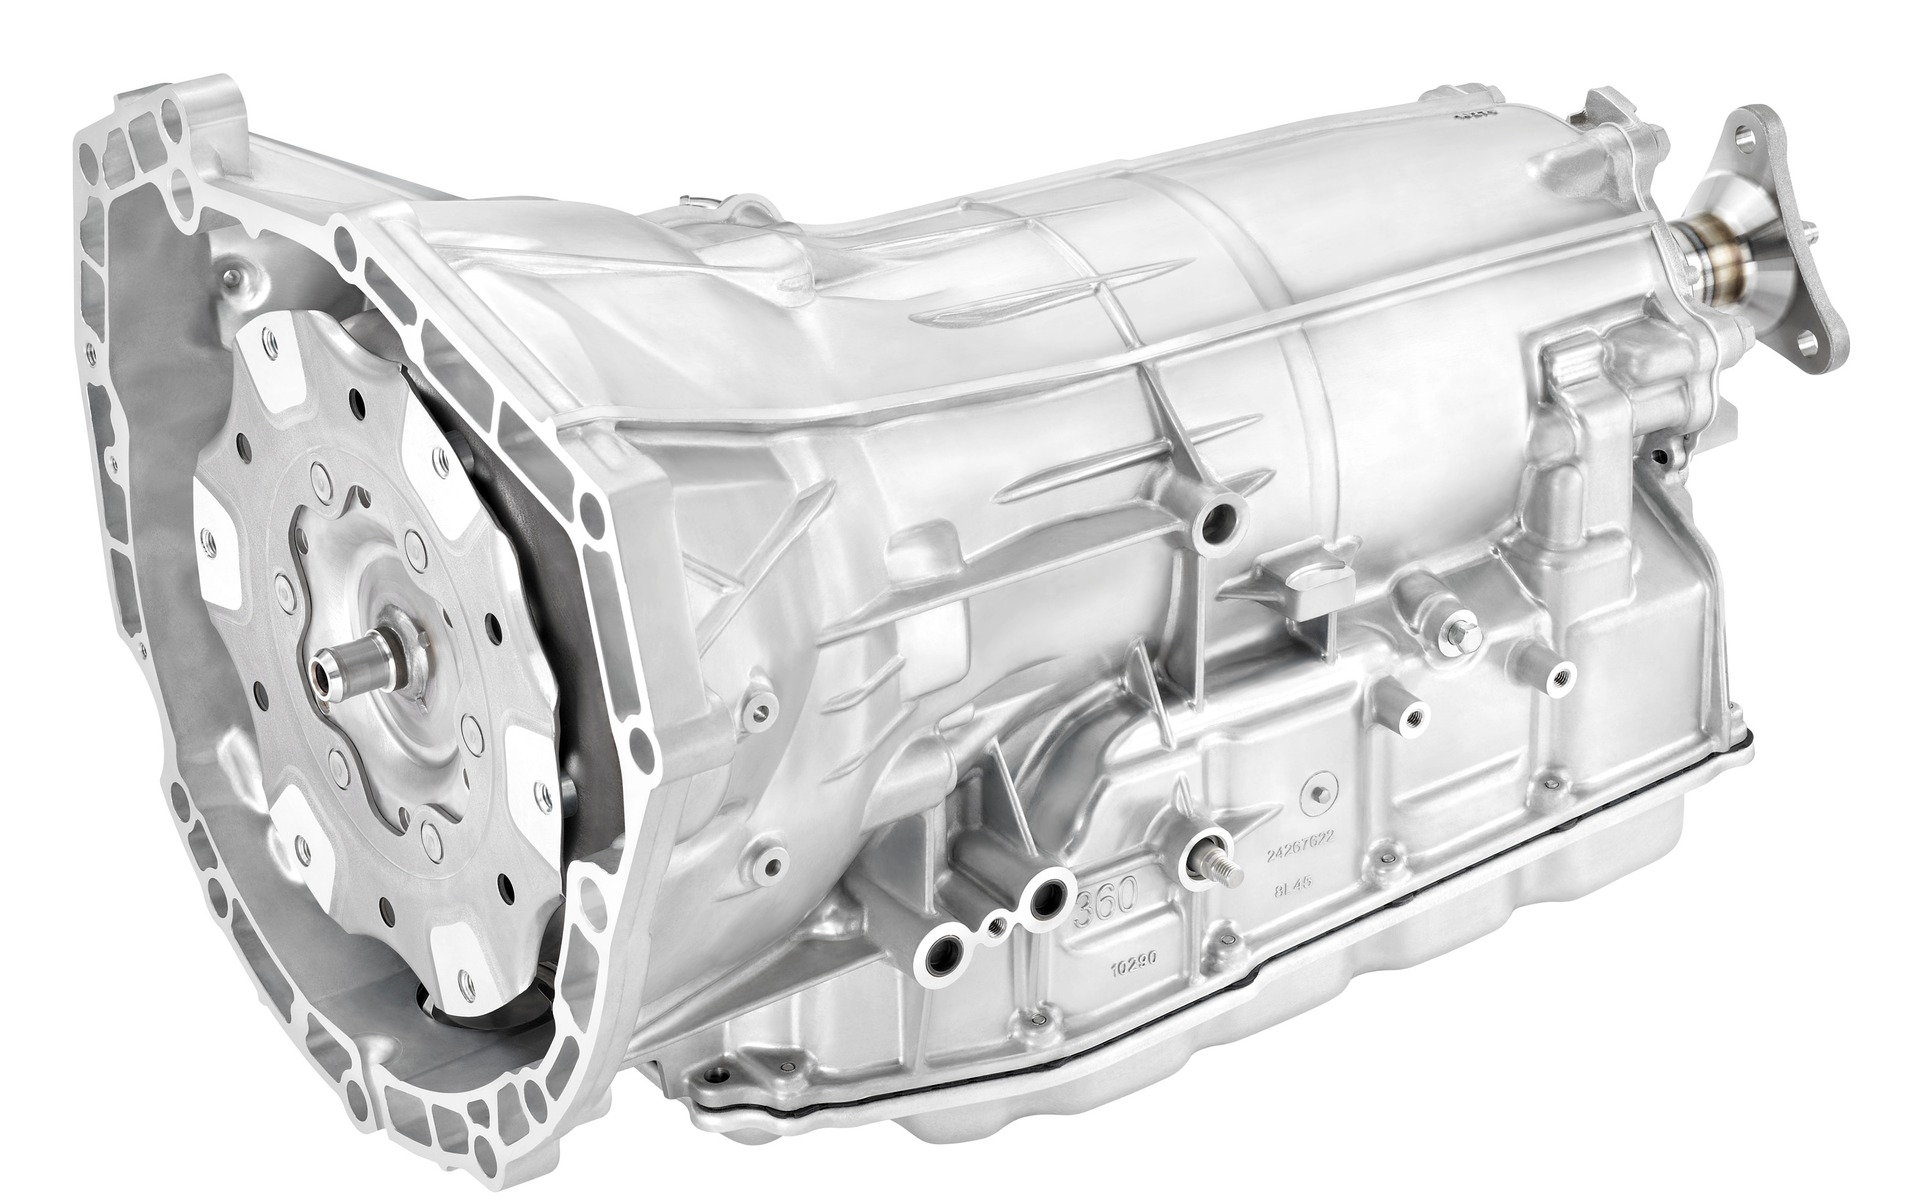 The 8L45 transmission will be paired with naturally aspirated engines.